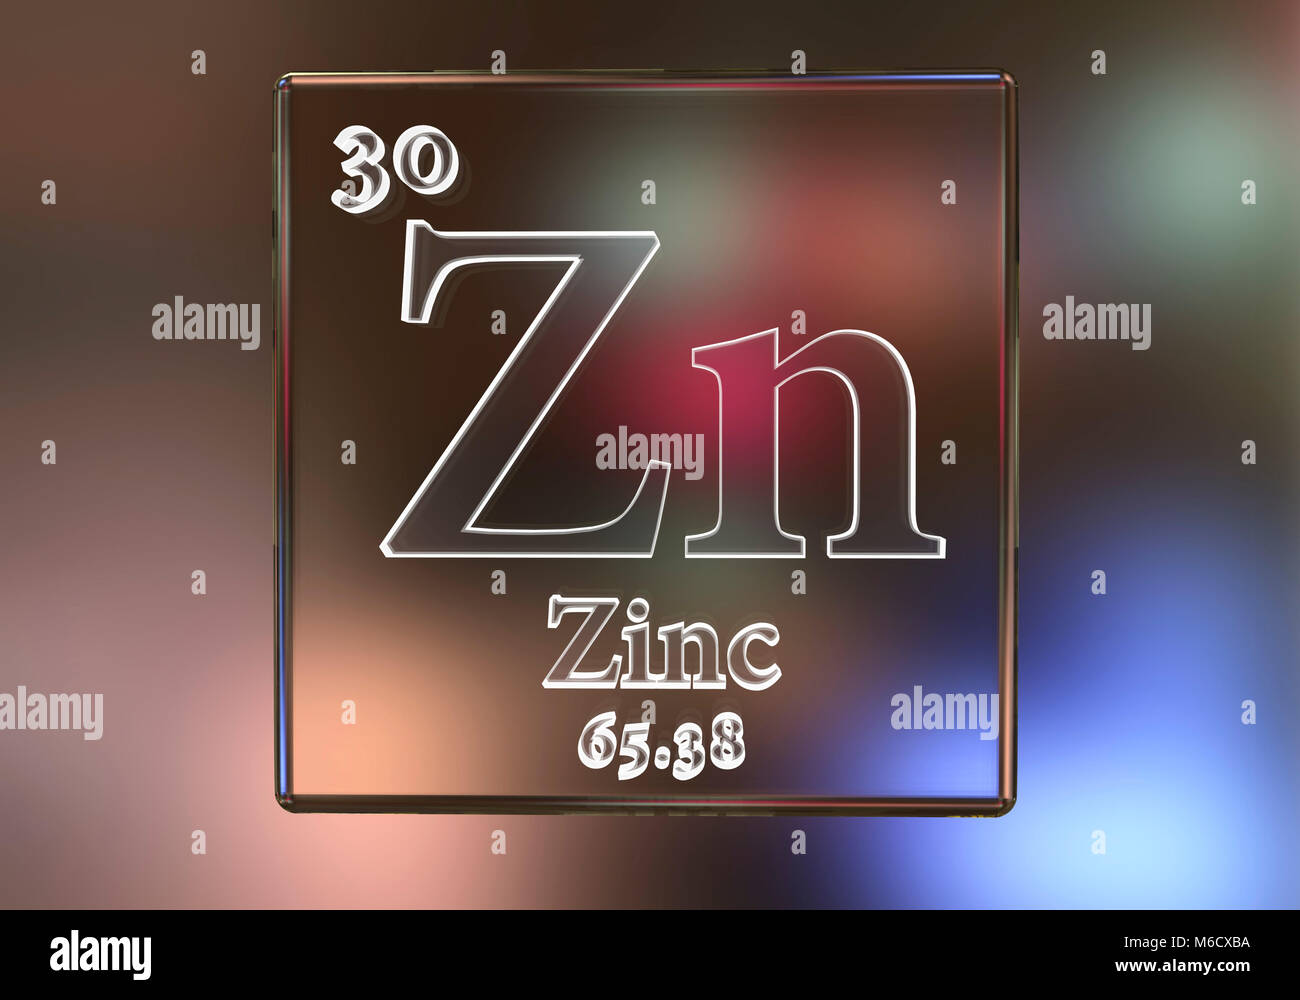 L'élément chimique Zinc, illustration de l'ordinateur. Photo Stock